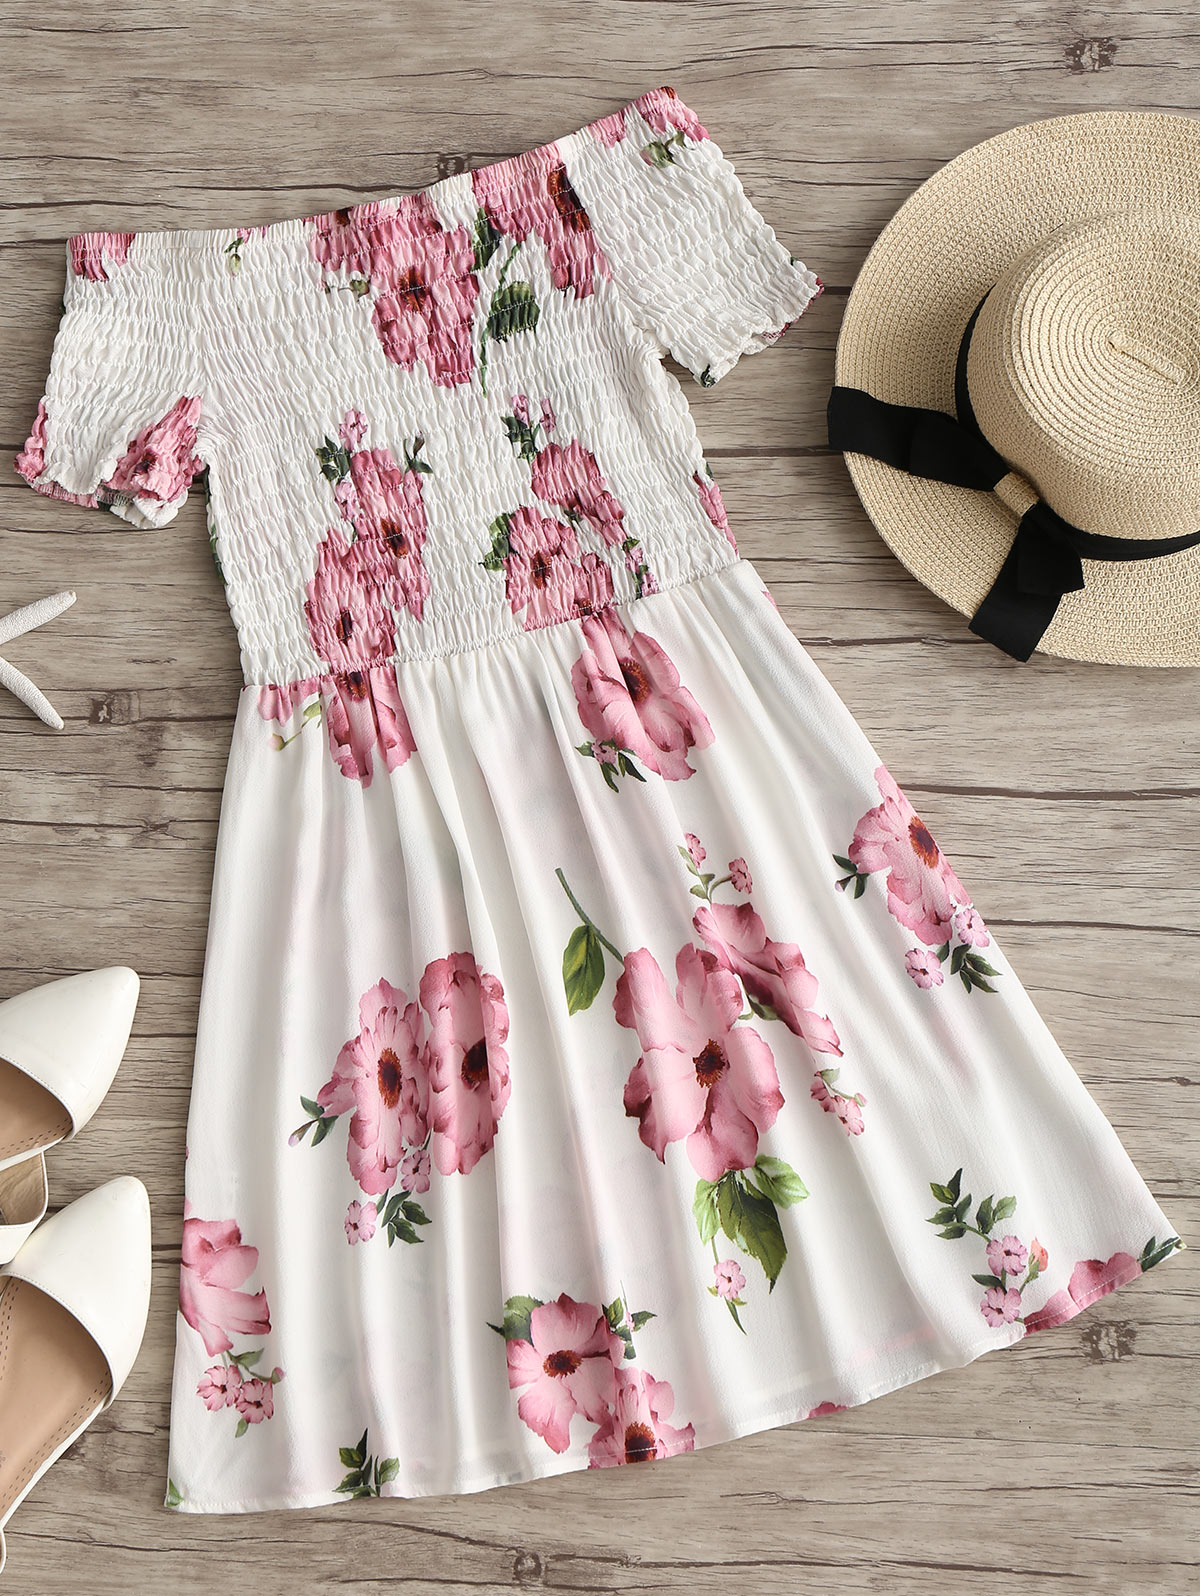 HTB1VUymeQfb uJjSsD4q6yqiFXap - Off Shoulder Smocked Flower Flare Dress JKP343